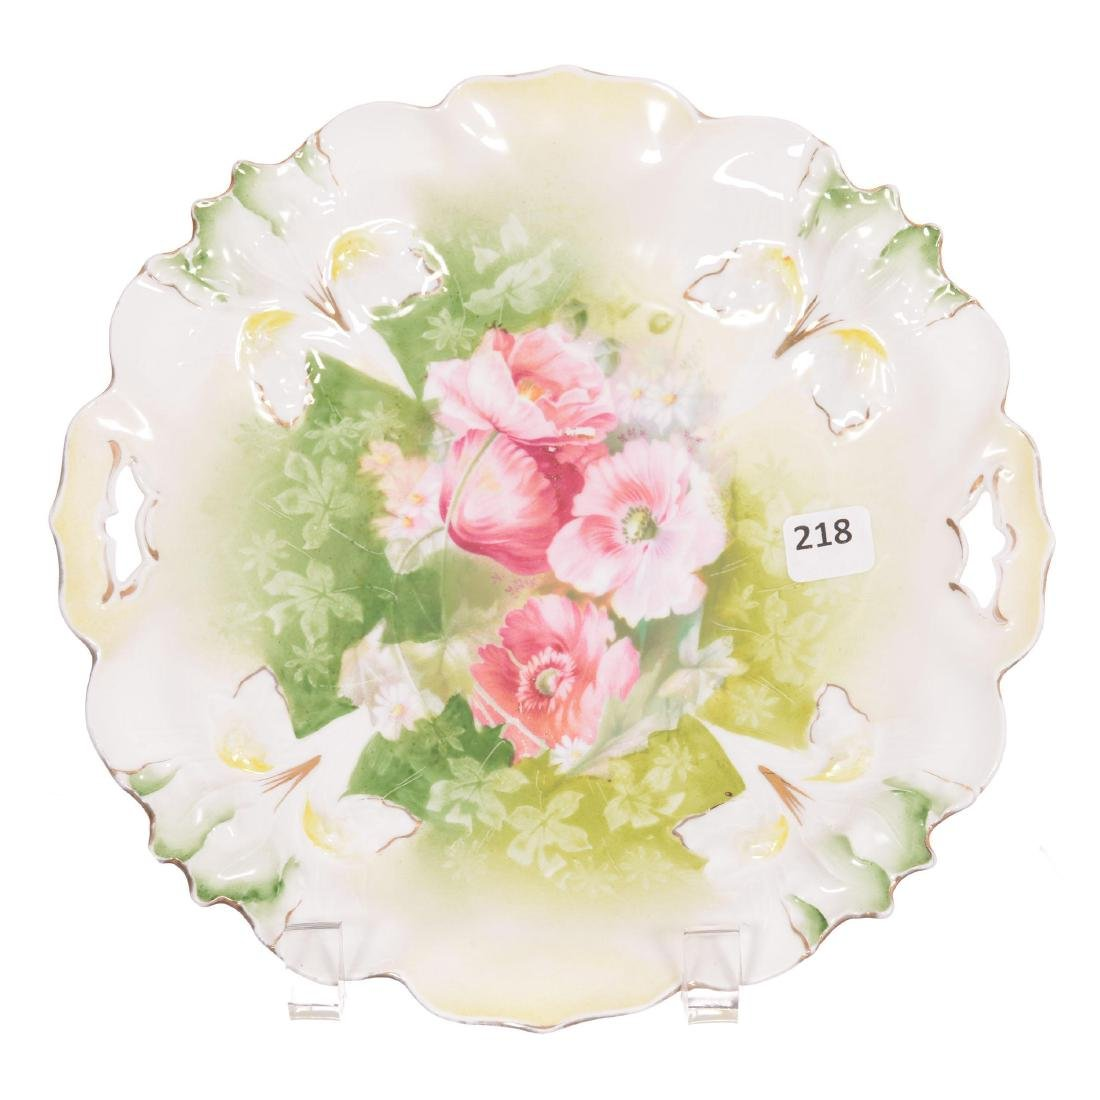 RSP Iris Mold Two-Handled Cake Plate